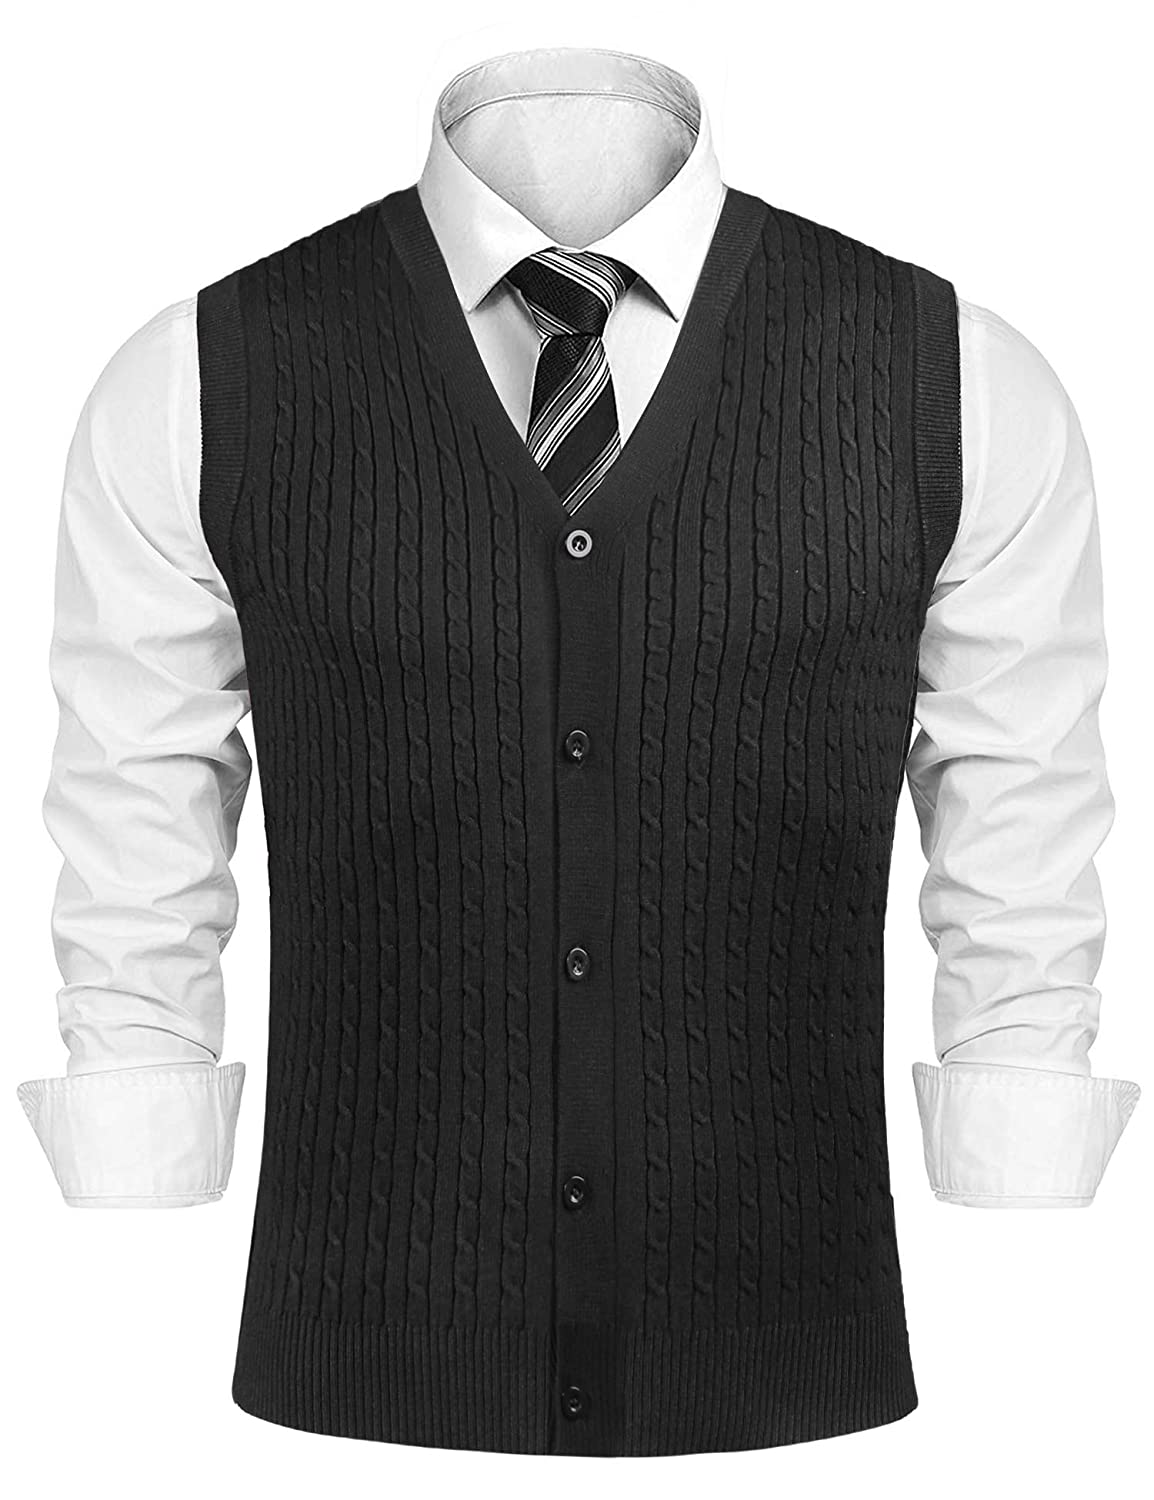 Sykooria Mens Gilets V Neck Sleeveless Vest Waistcoat Cotton Gentleman Chunky Winter Knitted Ribbed Tanks Tops Winter